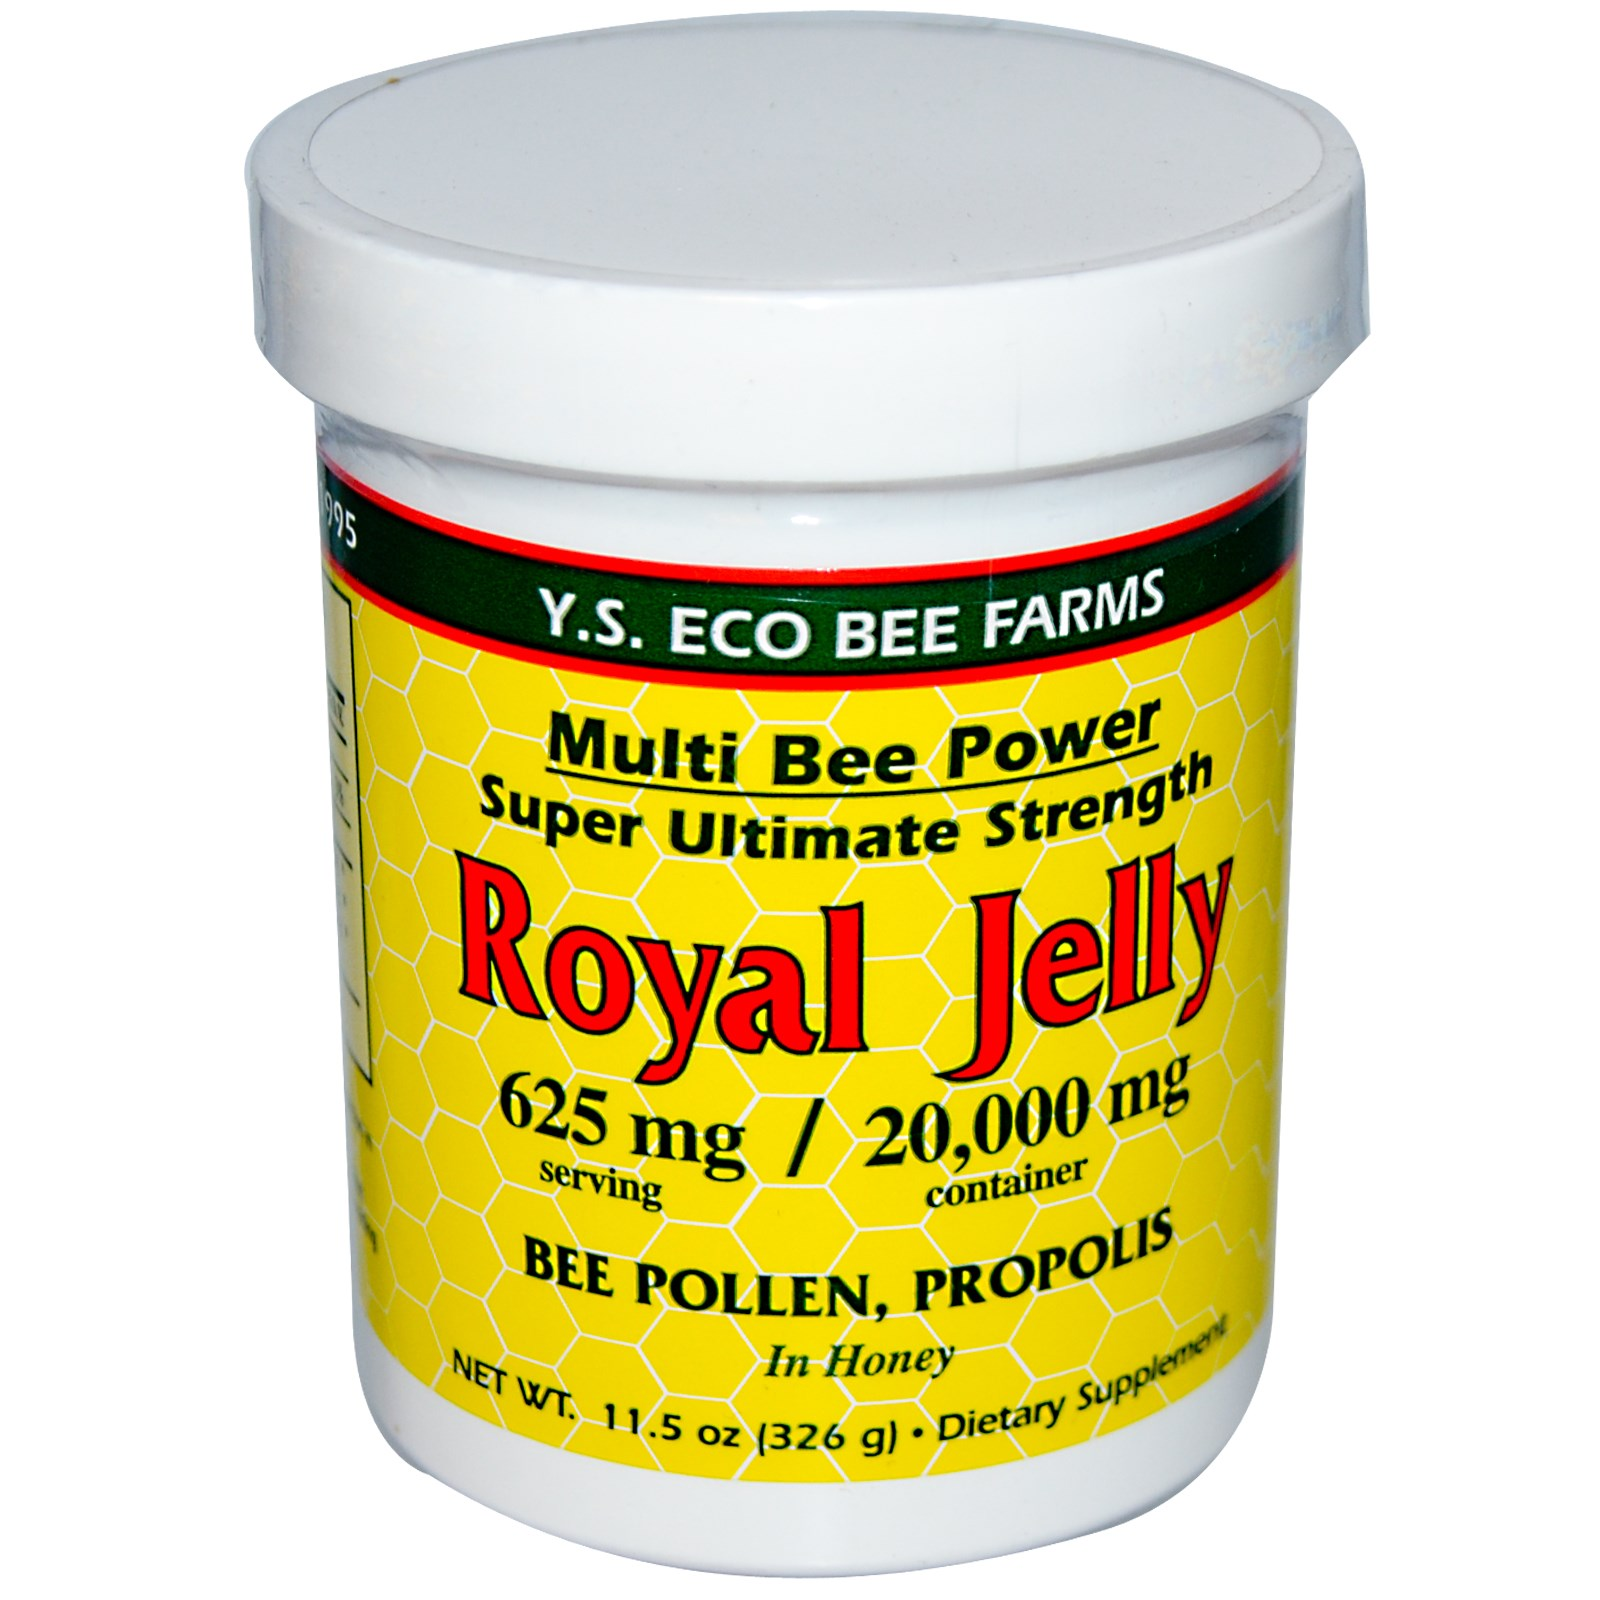 Y.S. Eco Bee Farms, Royal Jelly, 11.5 oz(pack of 6)